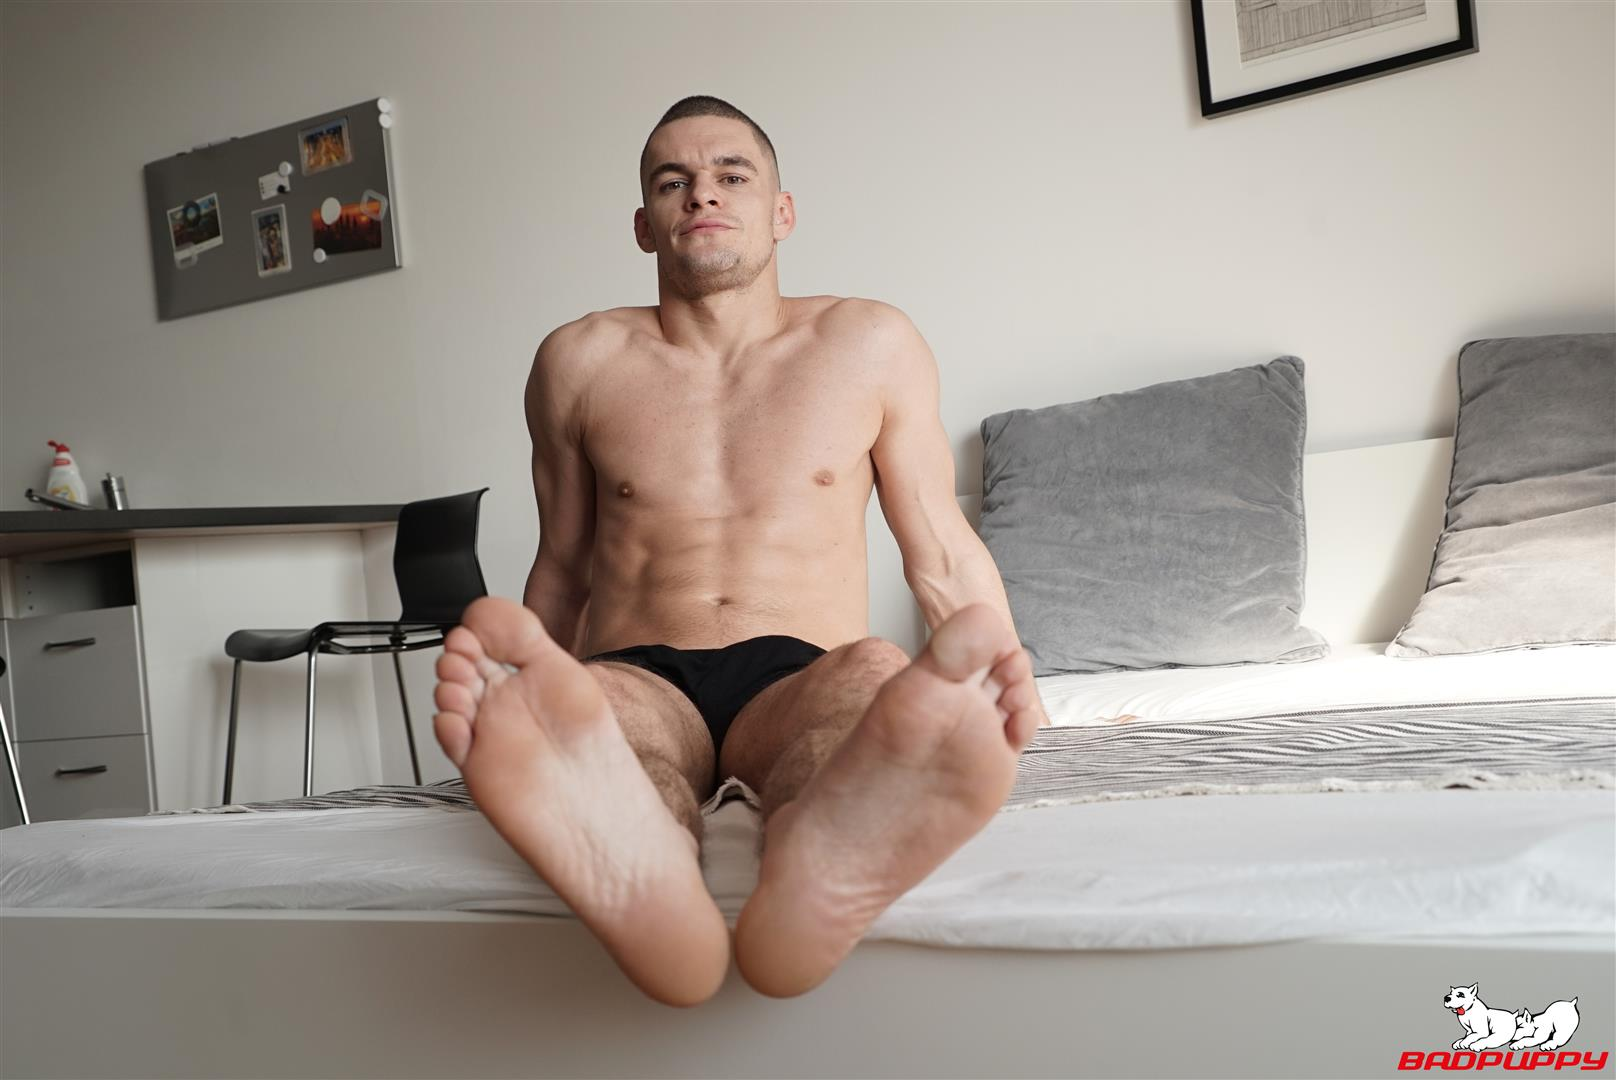 Badpuppy-Max-Dior-Big-Uncut-Cock-Jerkoff-Video-07 Waking Up From A Nap And Jerking Off My Big Uncut Cock